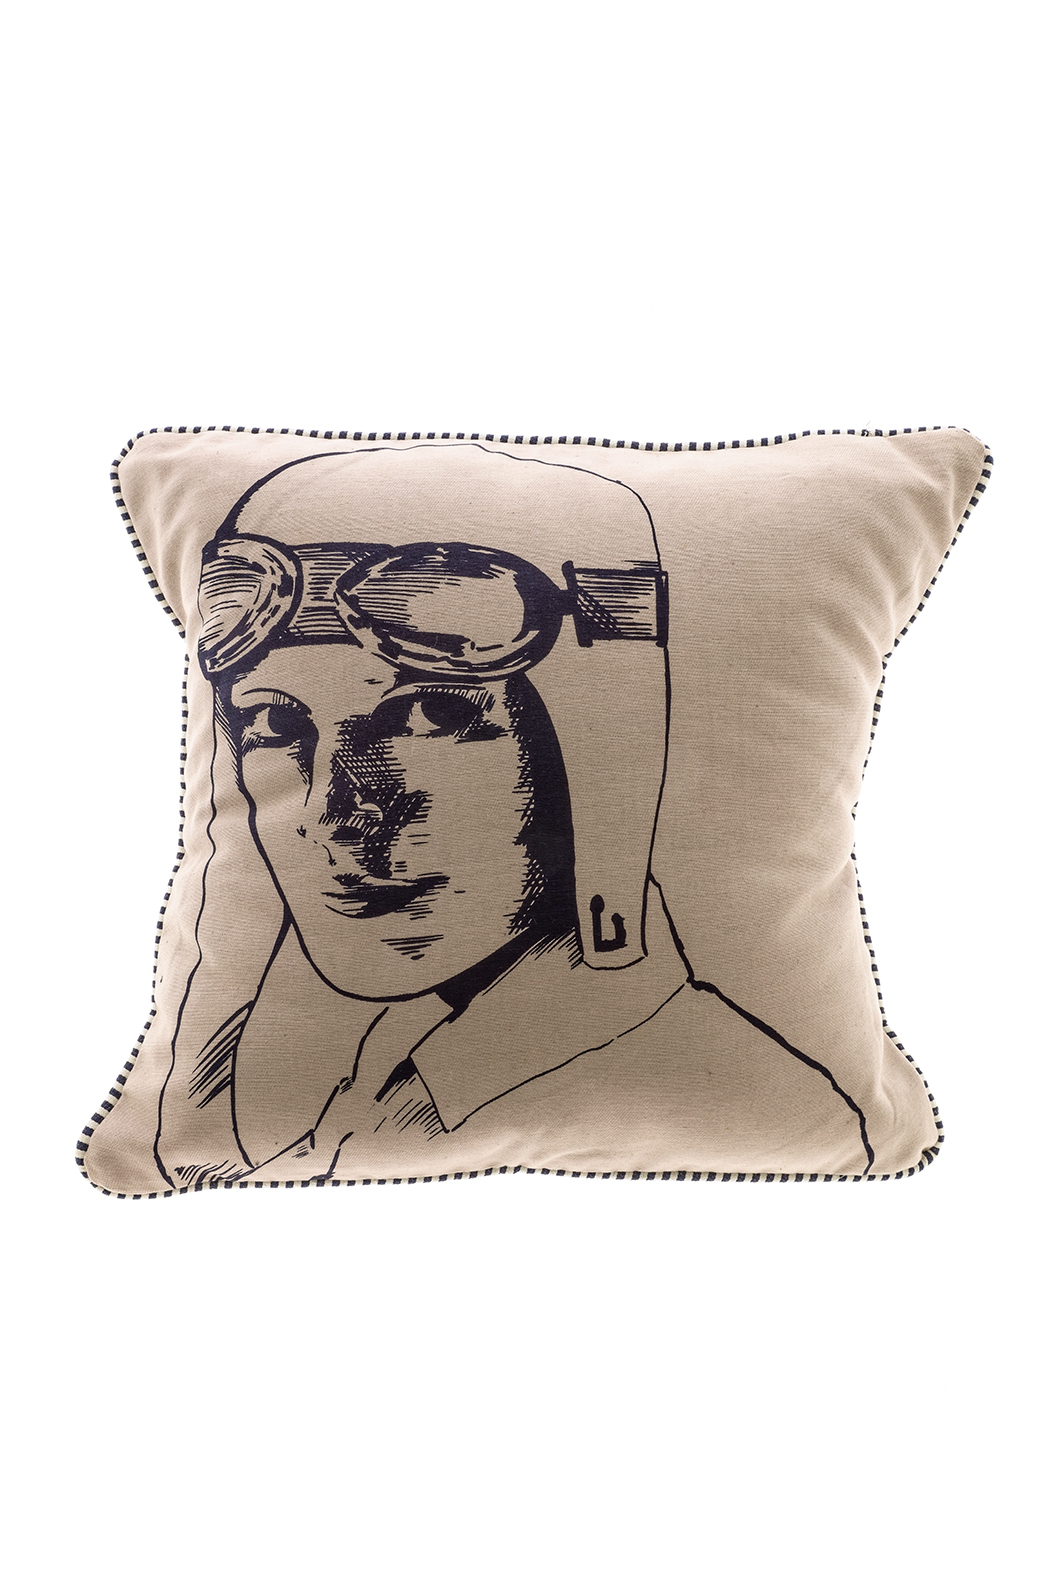 Spitfire Girl Amelia Earhart Pillow - Front Cropped Image